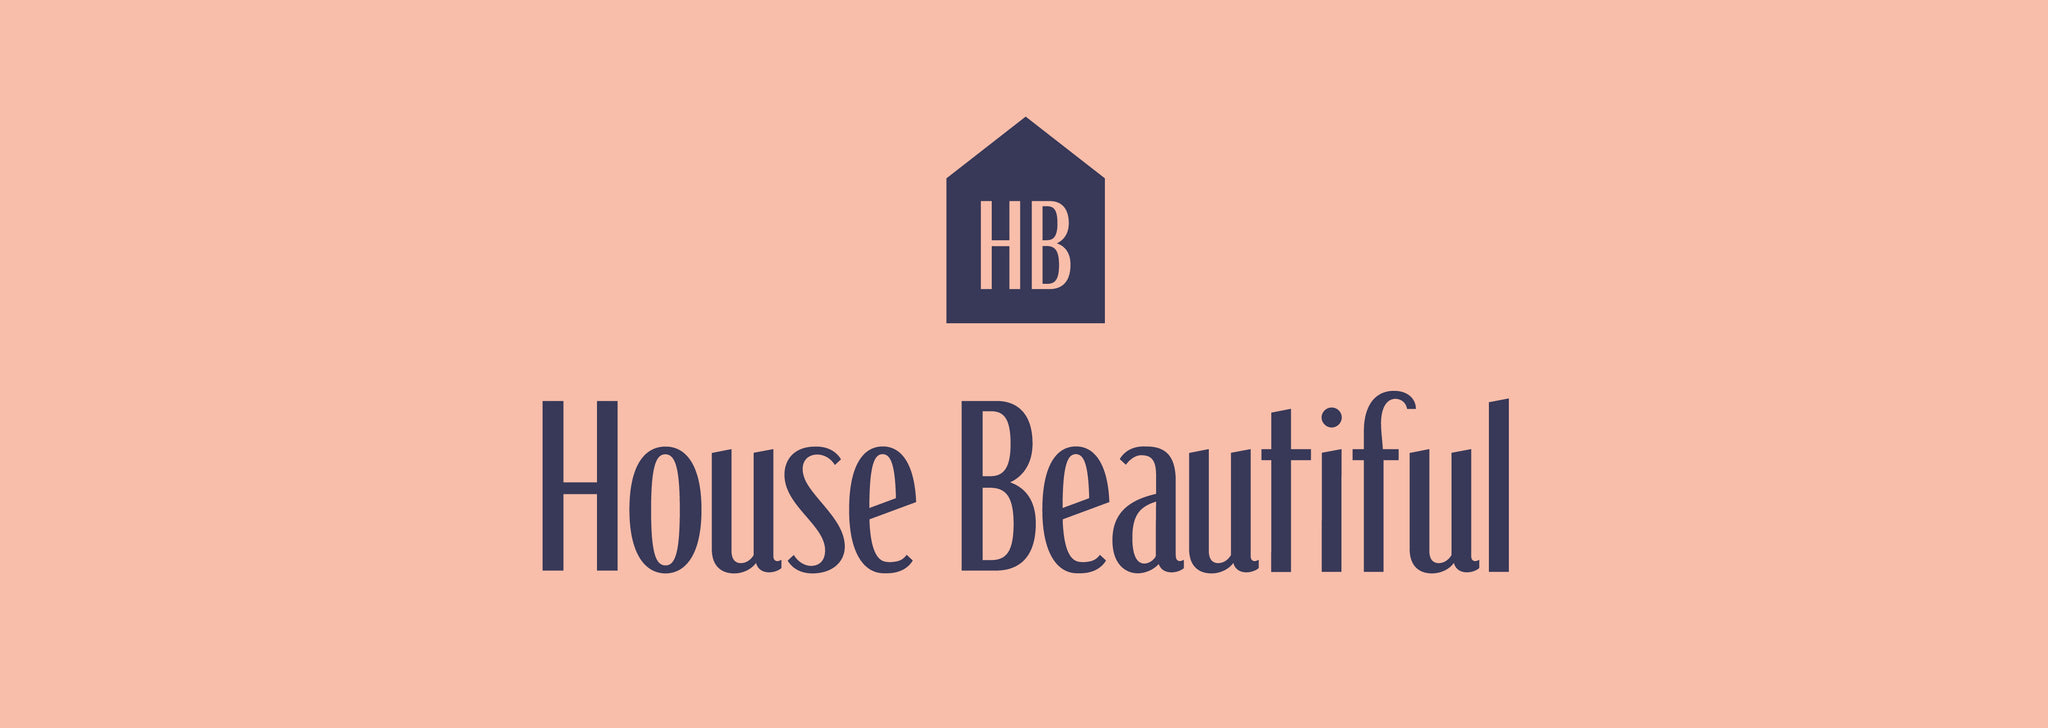 Why are we all smiles? Thanks House Beautiful!